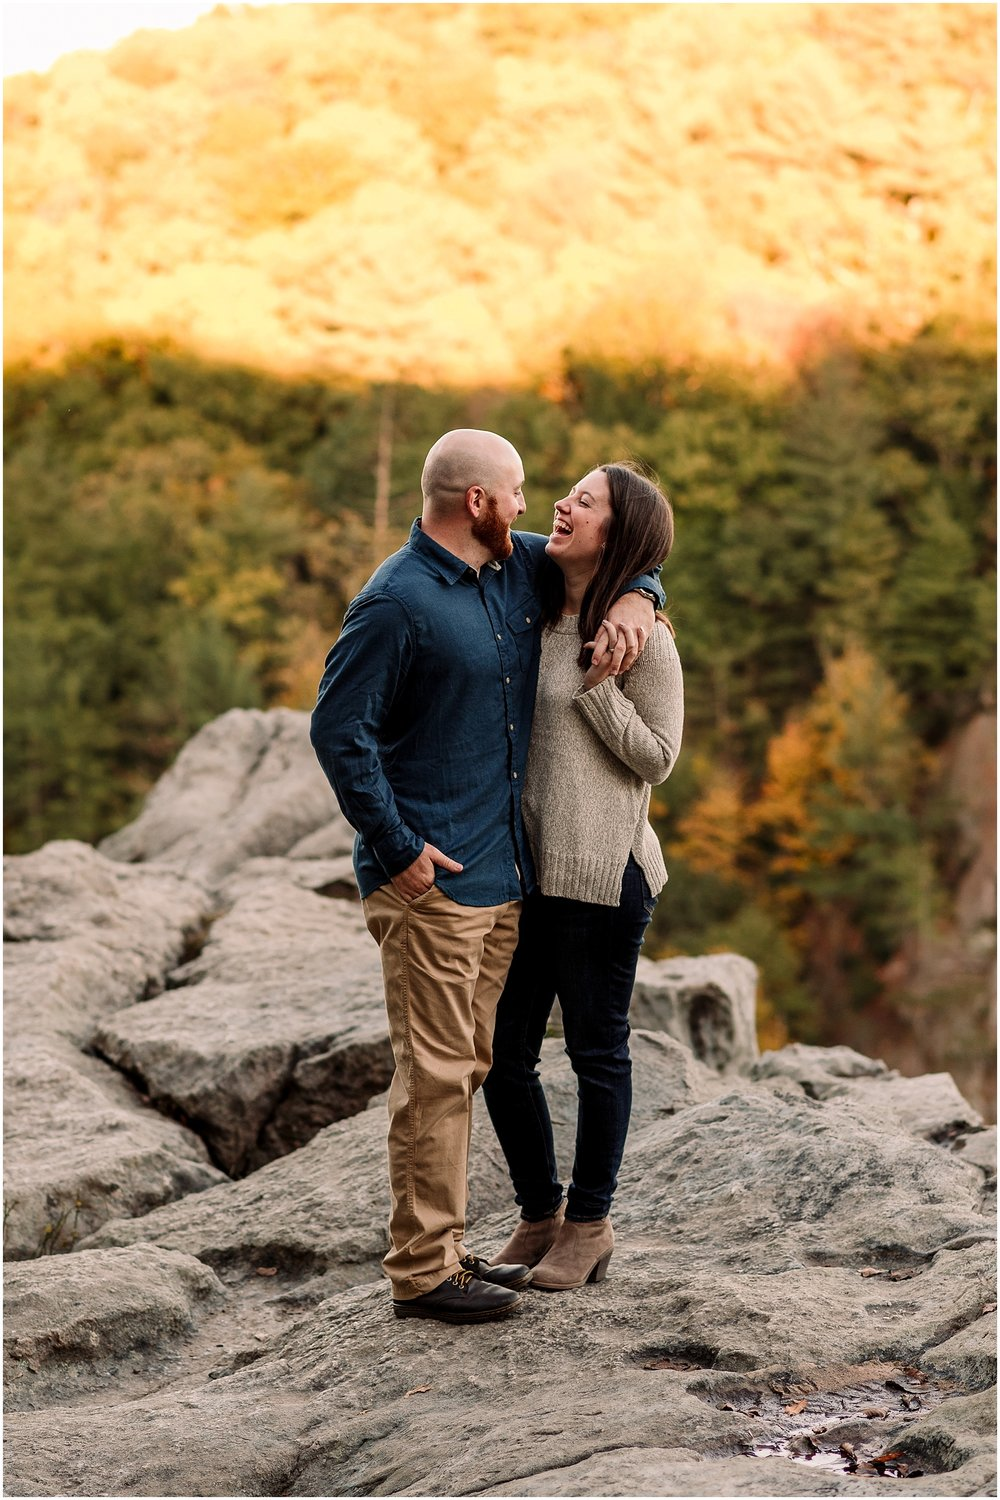 Hannah Leigh Photography Rocks State Park Engagement Session_6363.jpg